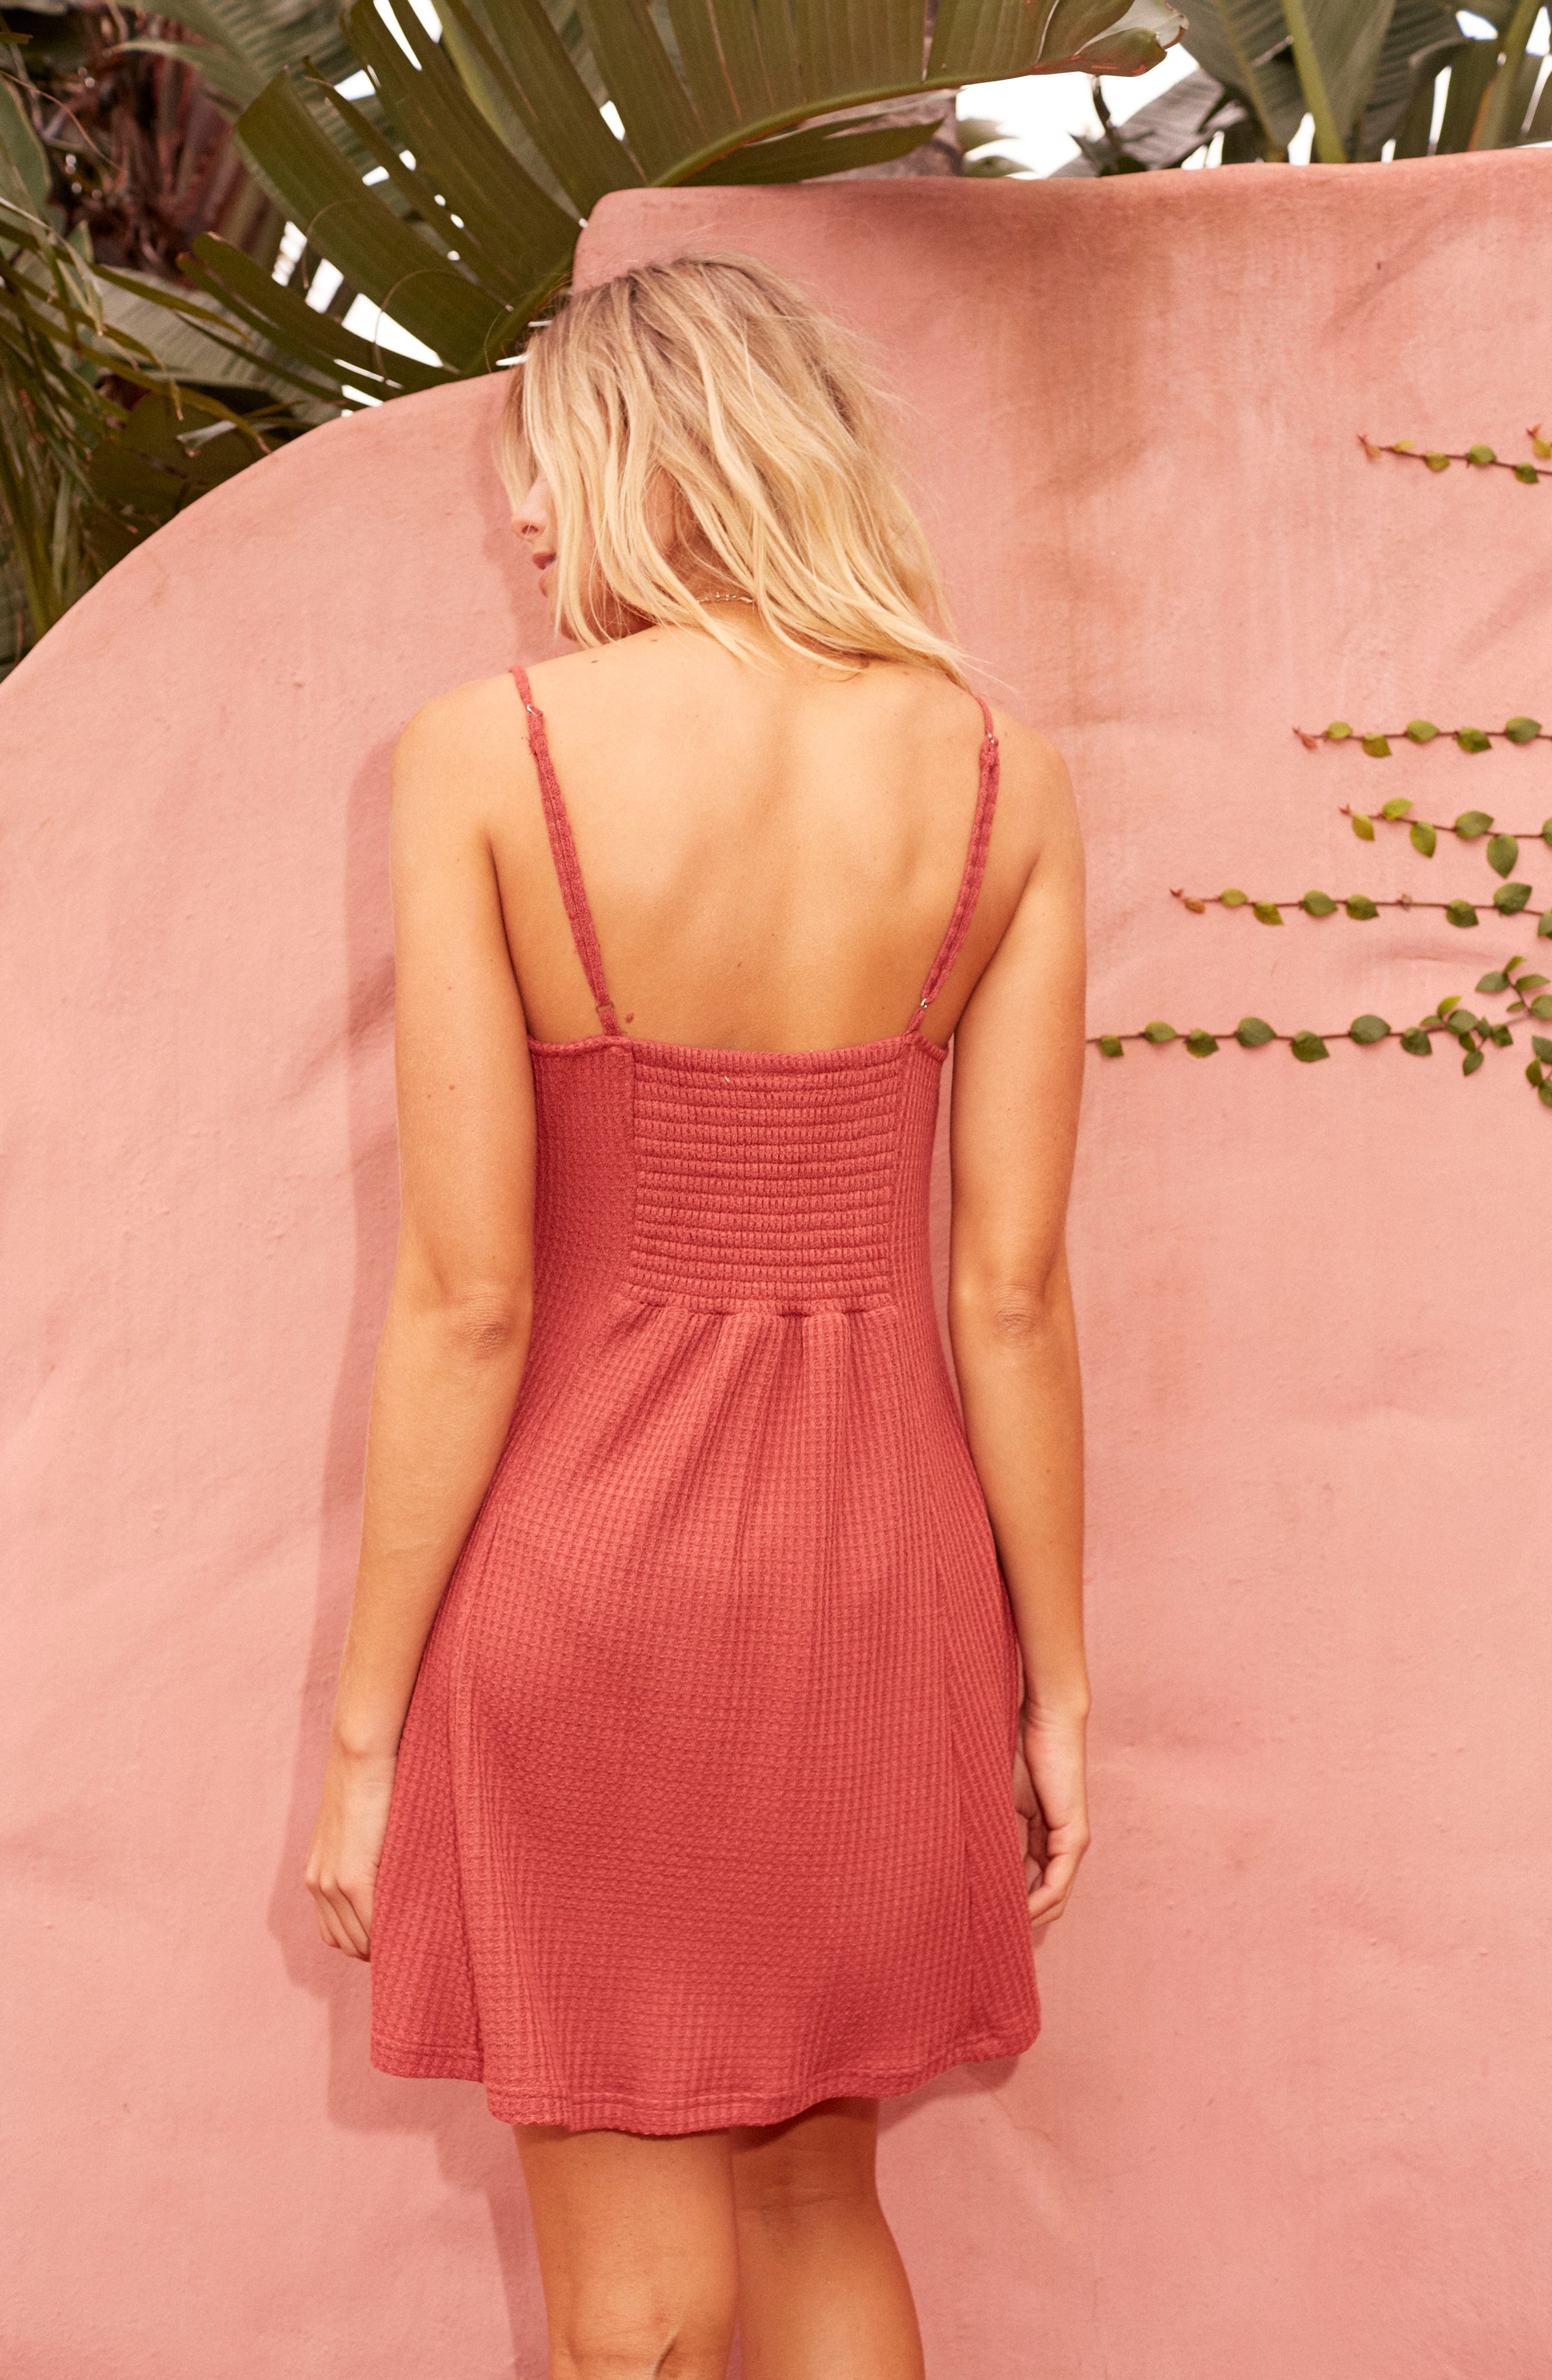 Lost Lovers Thermal Minidress,                             Alternate thumbnail 8, color,                             Baked Pink